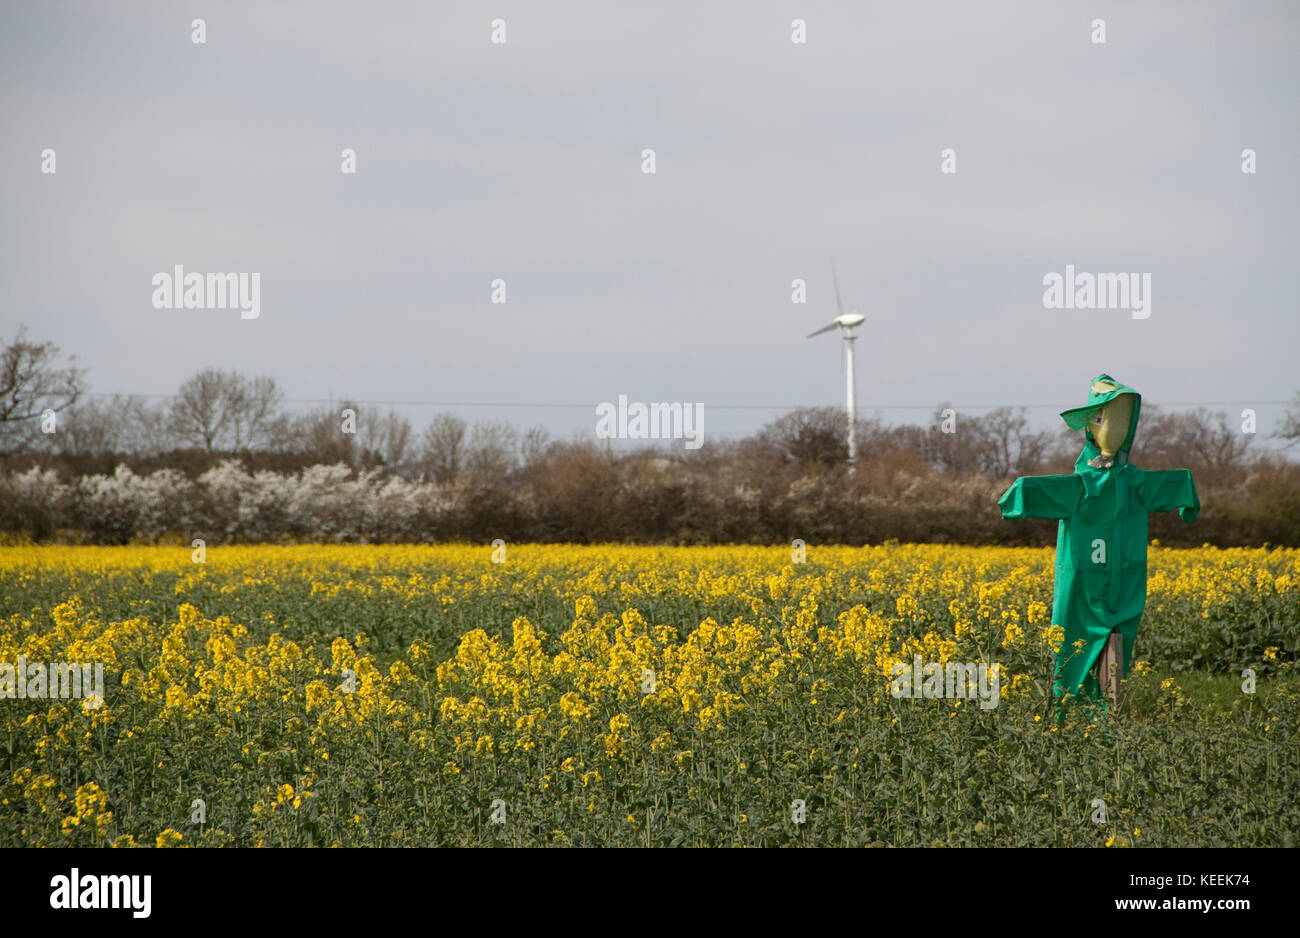 A scarecrow in a green waterproof and a filed of oil seed rape - Stock Image